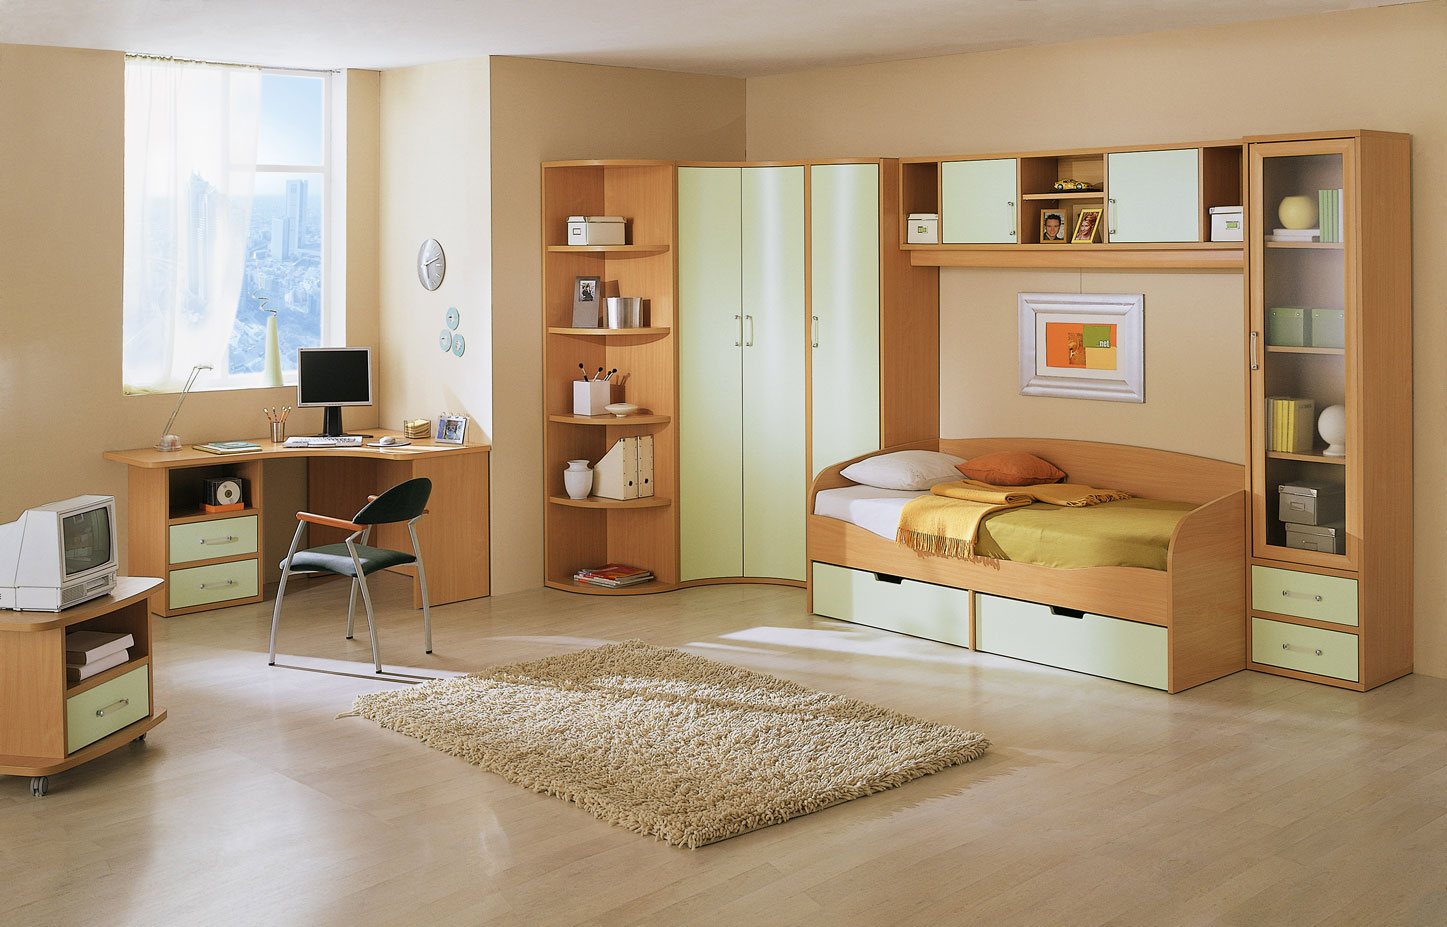 Kid 39 s rooms from russian maker akossta Youth bedroom design ideas